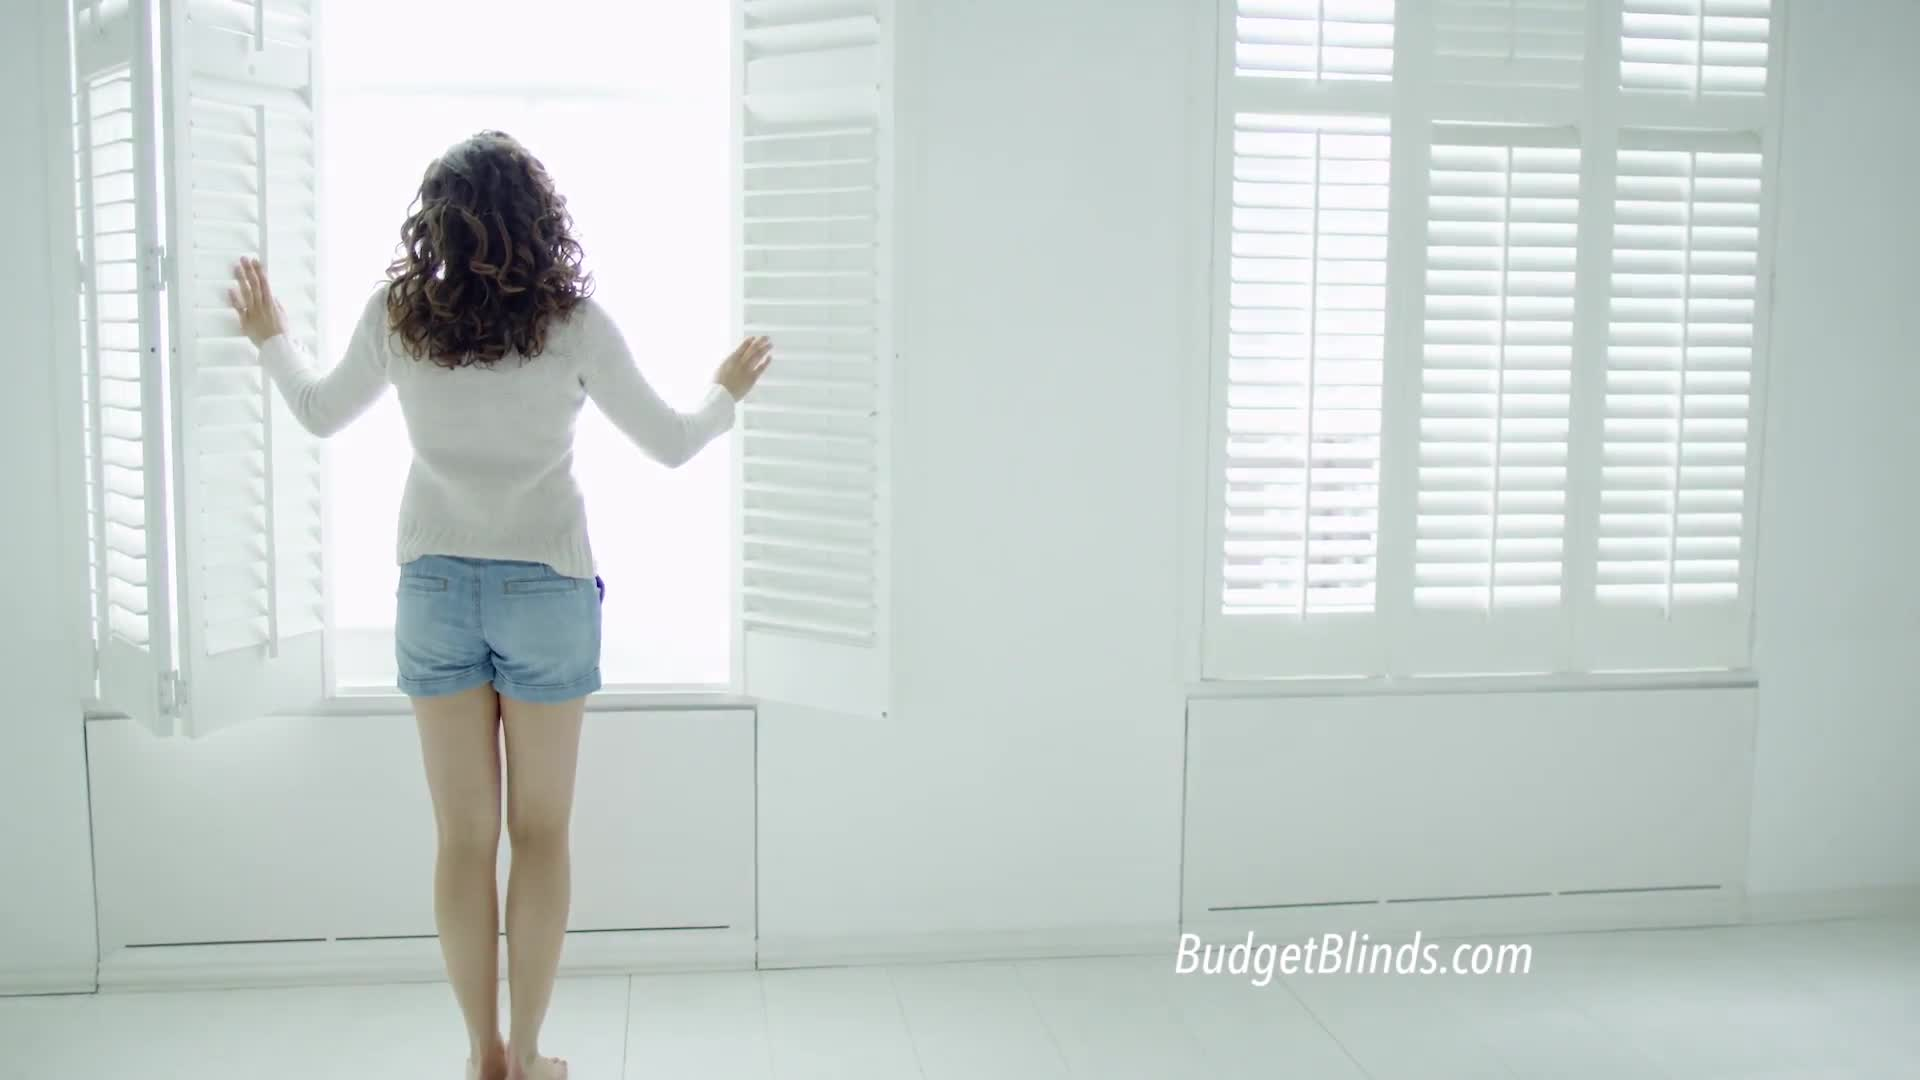 Budget Blinds - Window Shade & Blind Stores - 587-600-3044